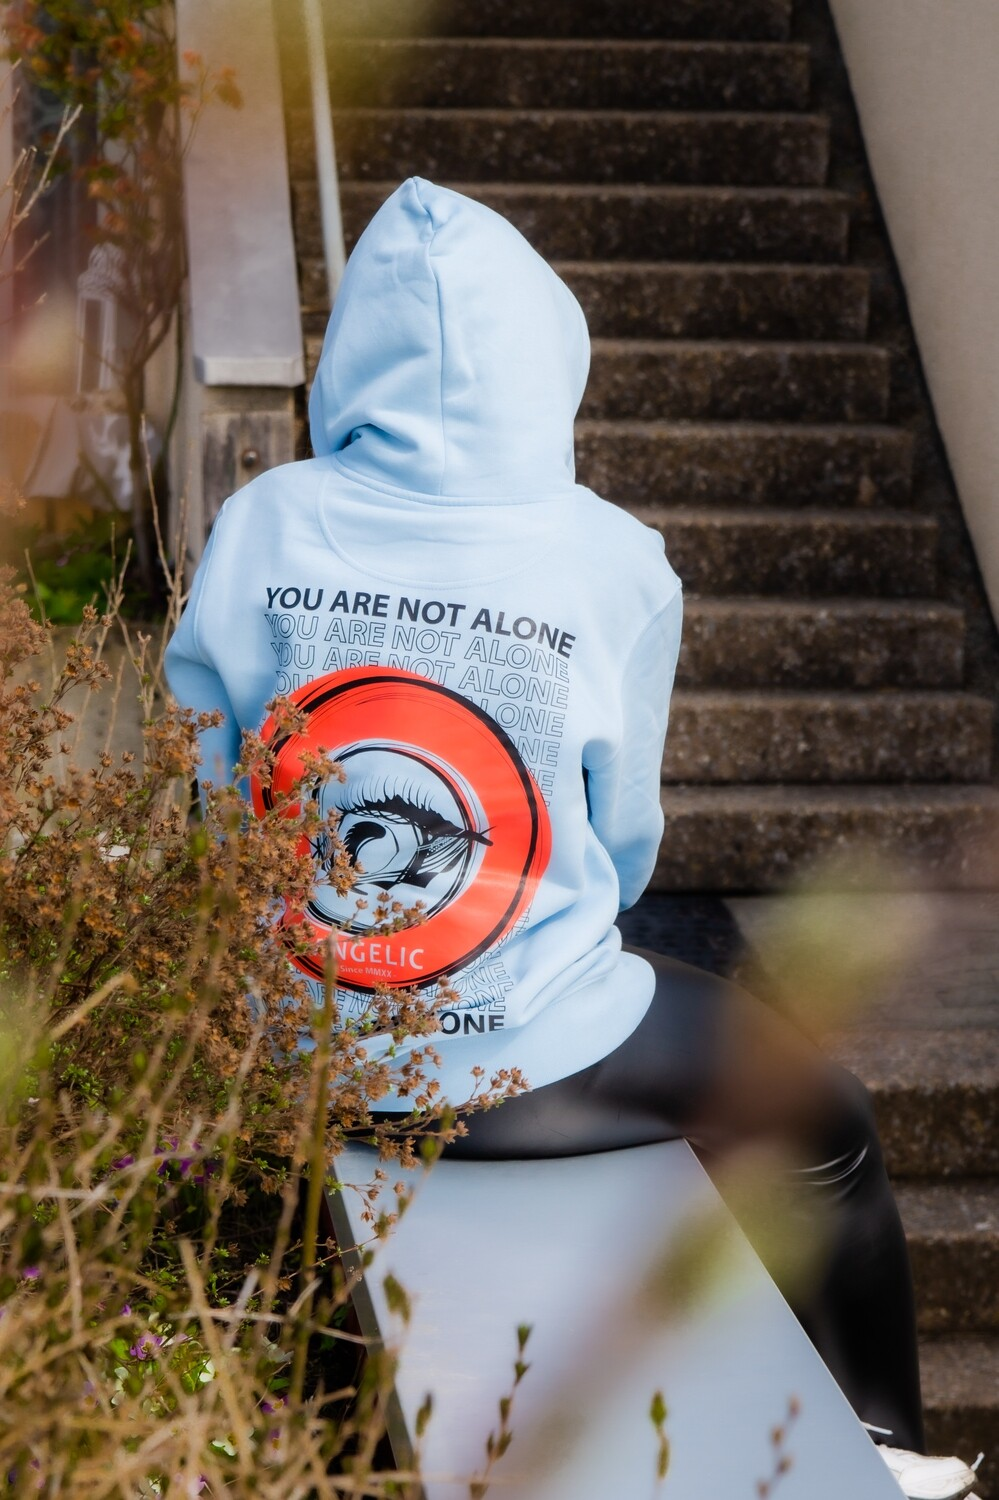 ANGELIC Hoodie blau, YOU ARE NOT ALONE - UNISEX.